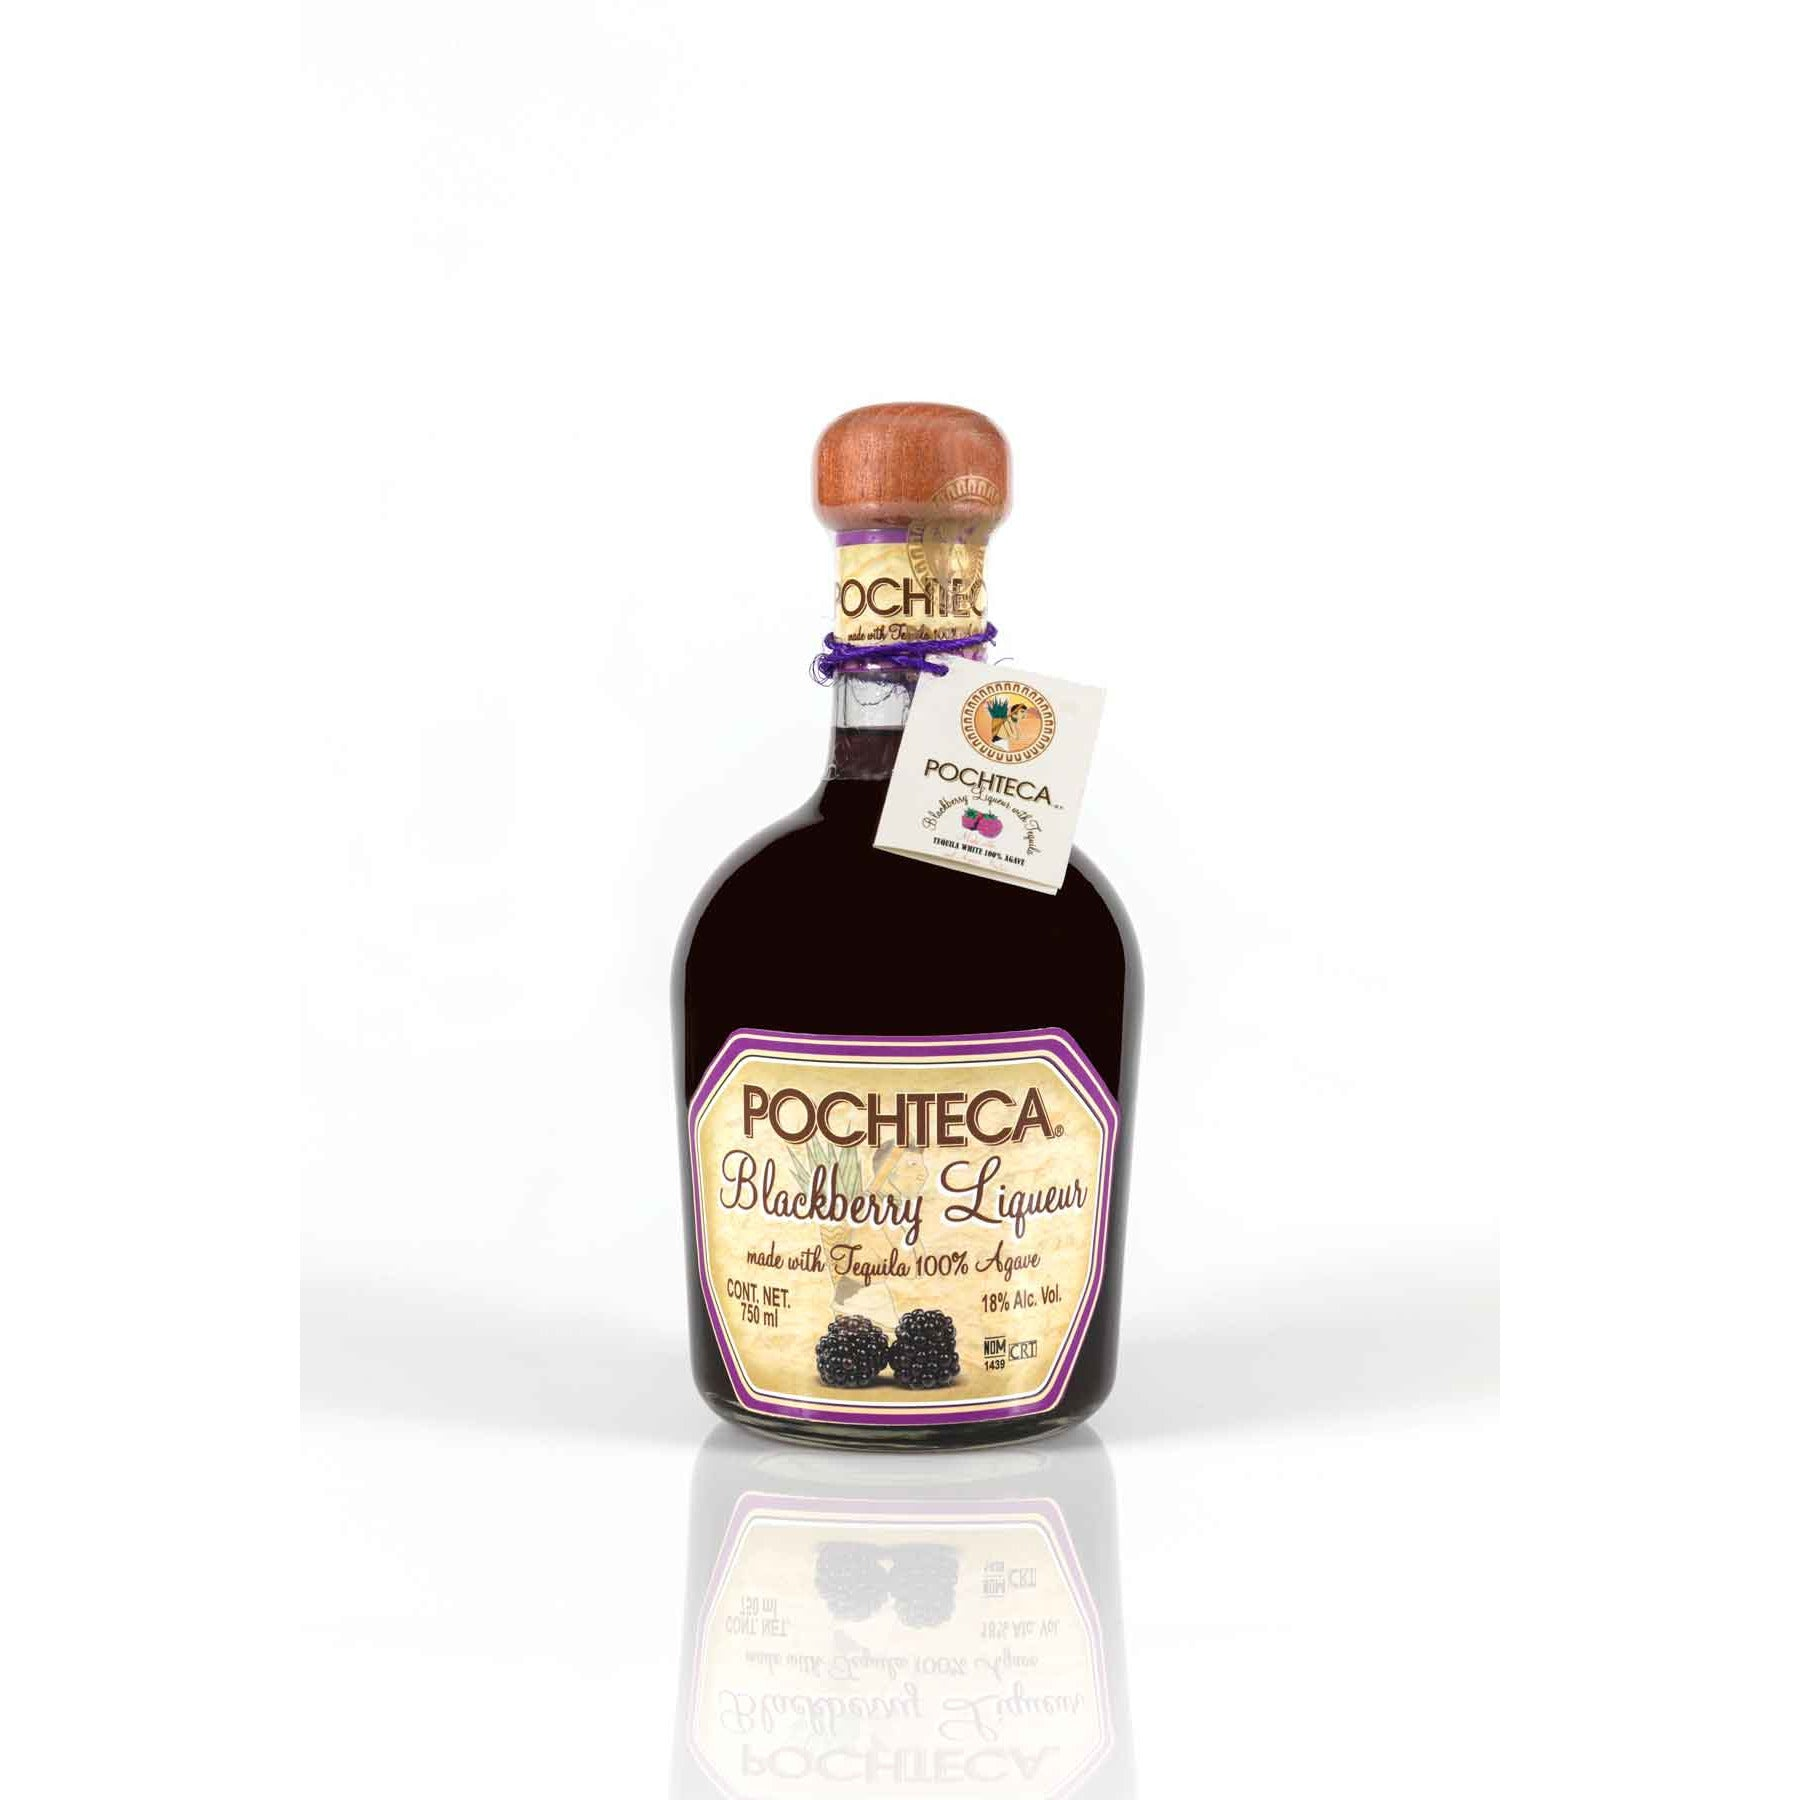 Pochteca Blackberry Liqueur with Tequila (375 ML)